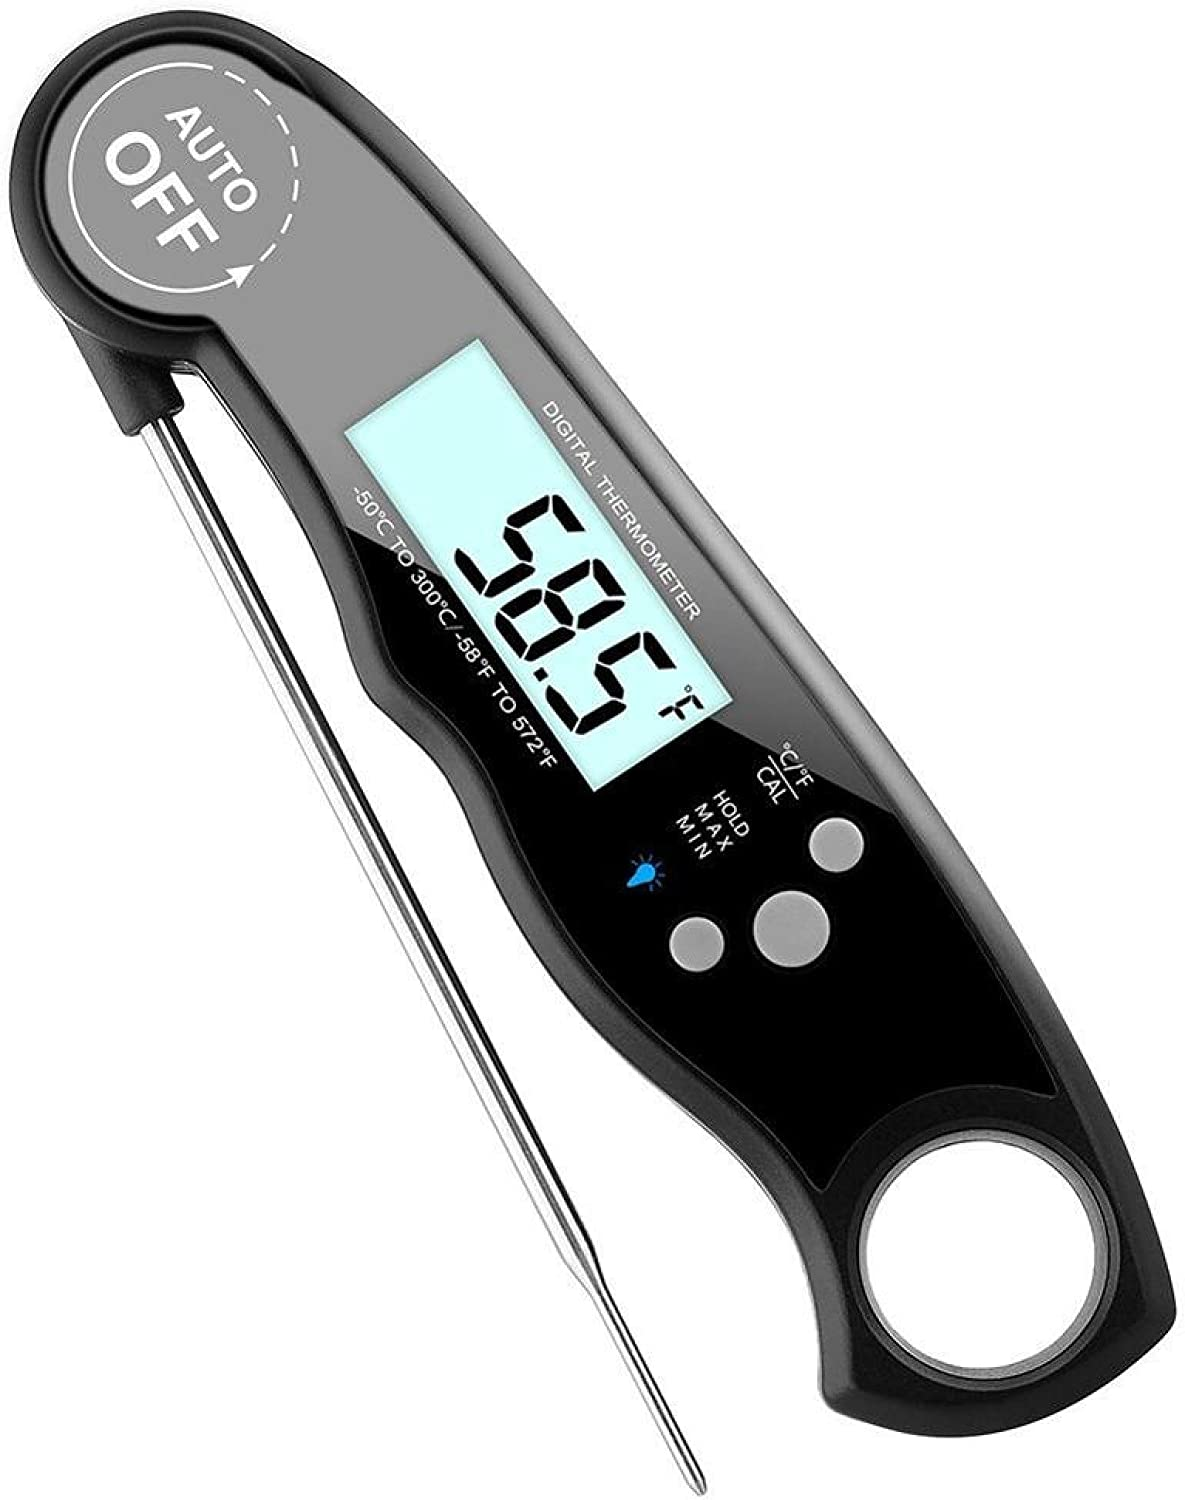 Millona Meat Thermometer, Digital Instant Read Food Thermometers, Waterproof Cooking BBQ Thermometer with Foldable Probe